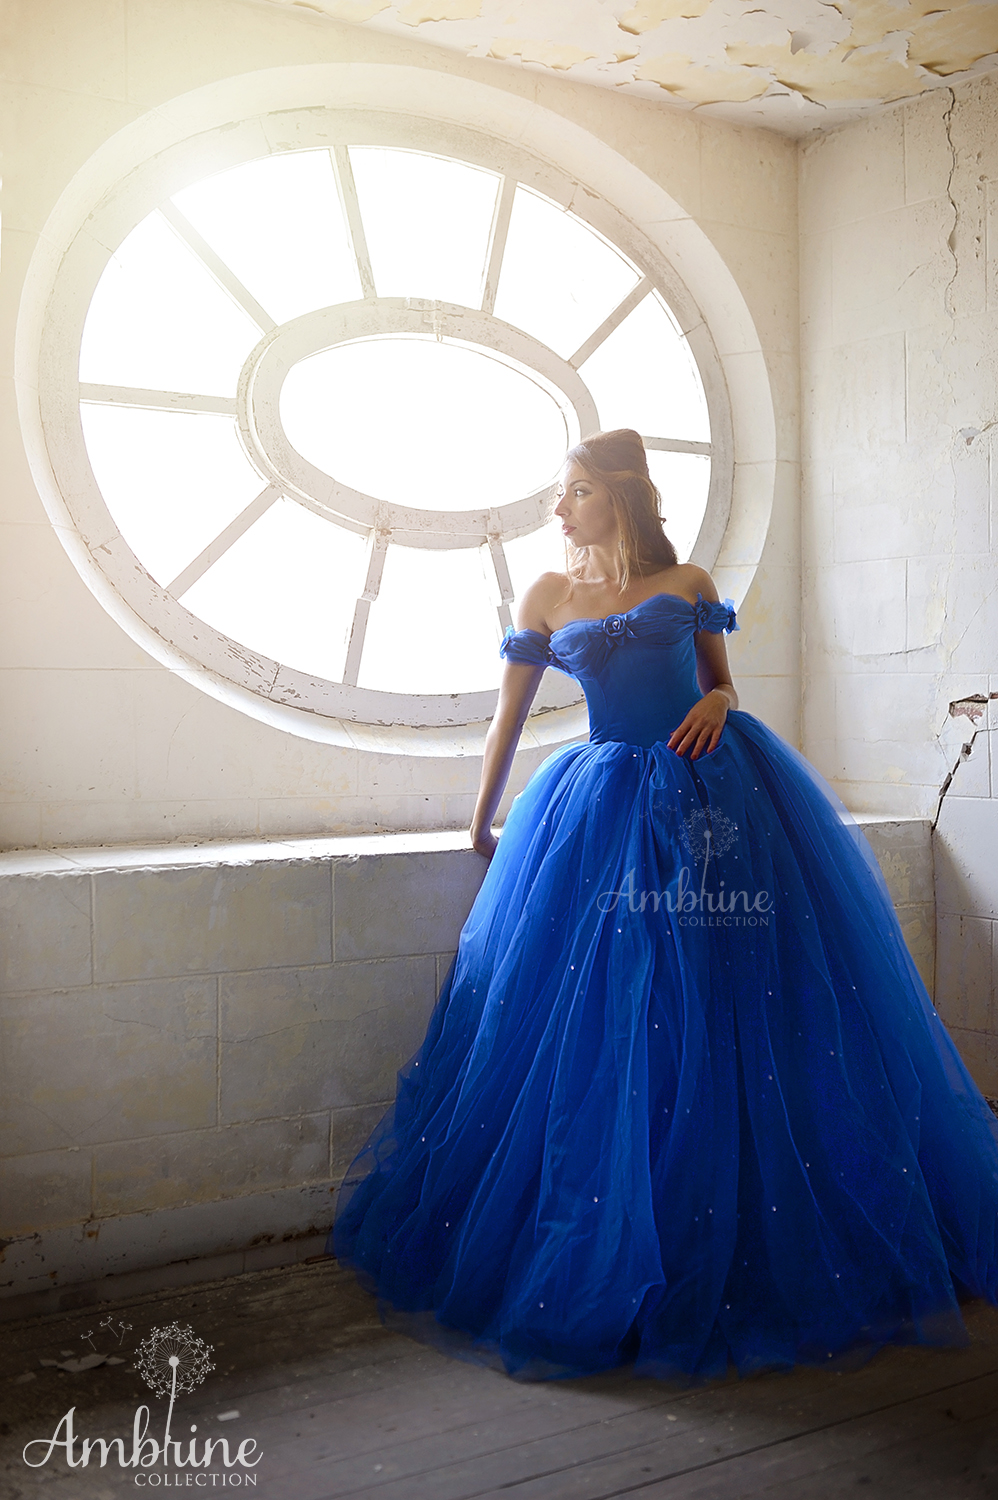 photo-robe-bleue-romantique-azur-princesse-ambrine-collection-bordeaux-7